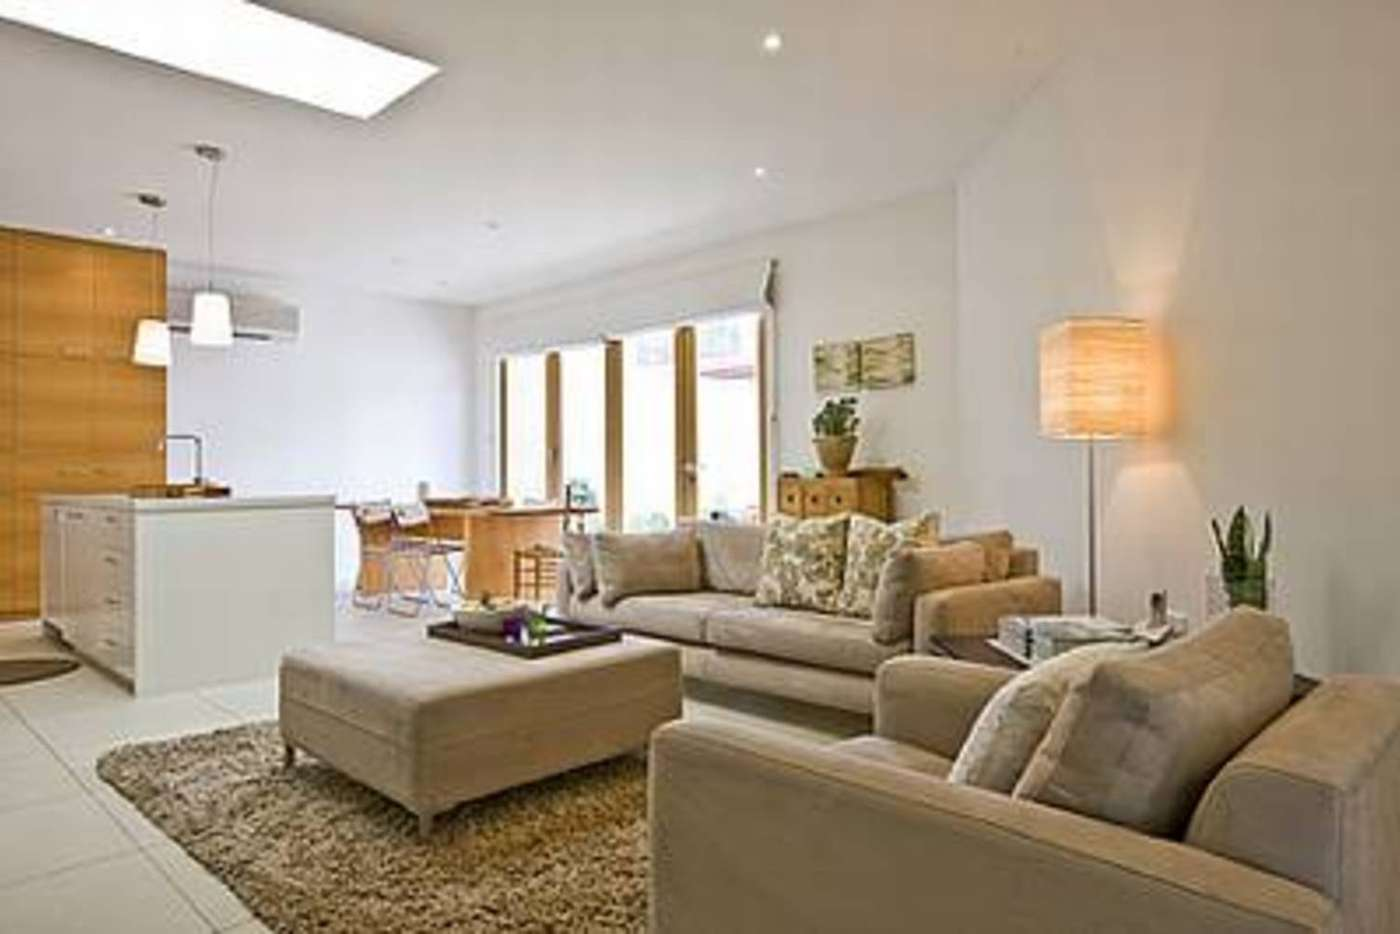 Seventh view of Homely house listing, 4 Melrose Street, North Melbourne VIC 3051